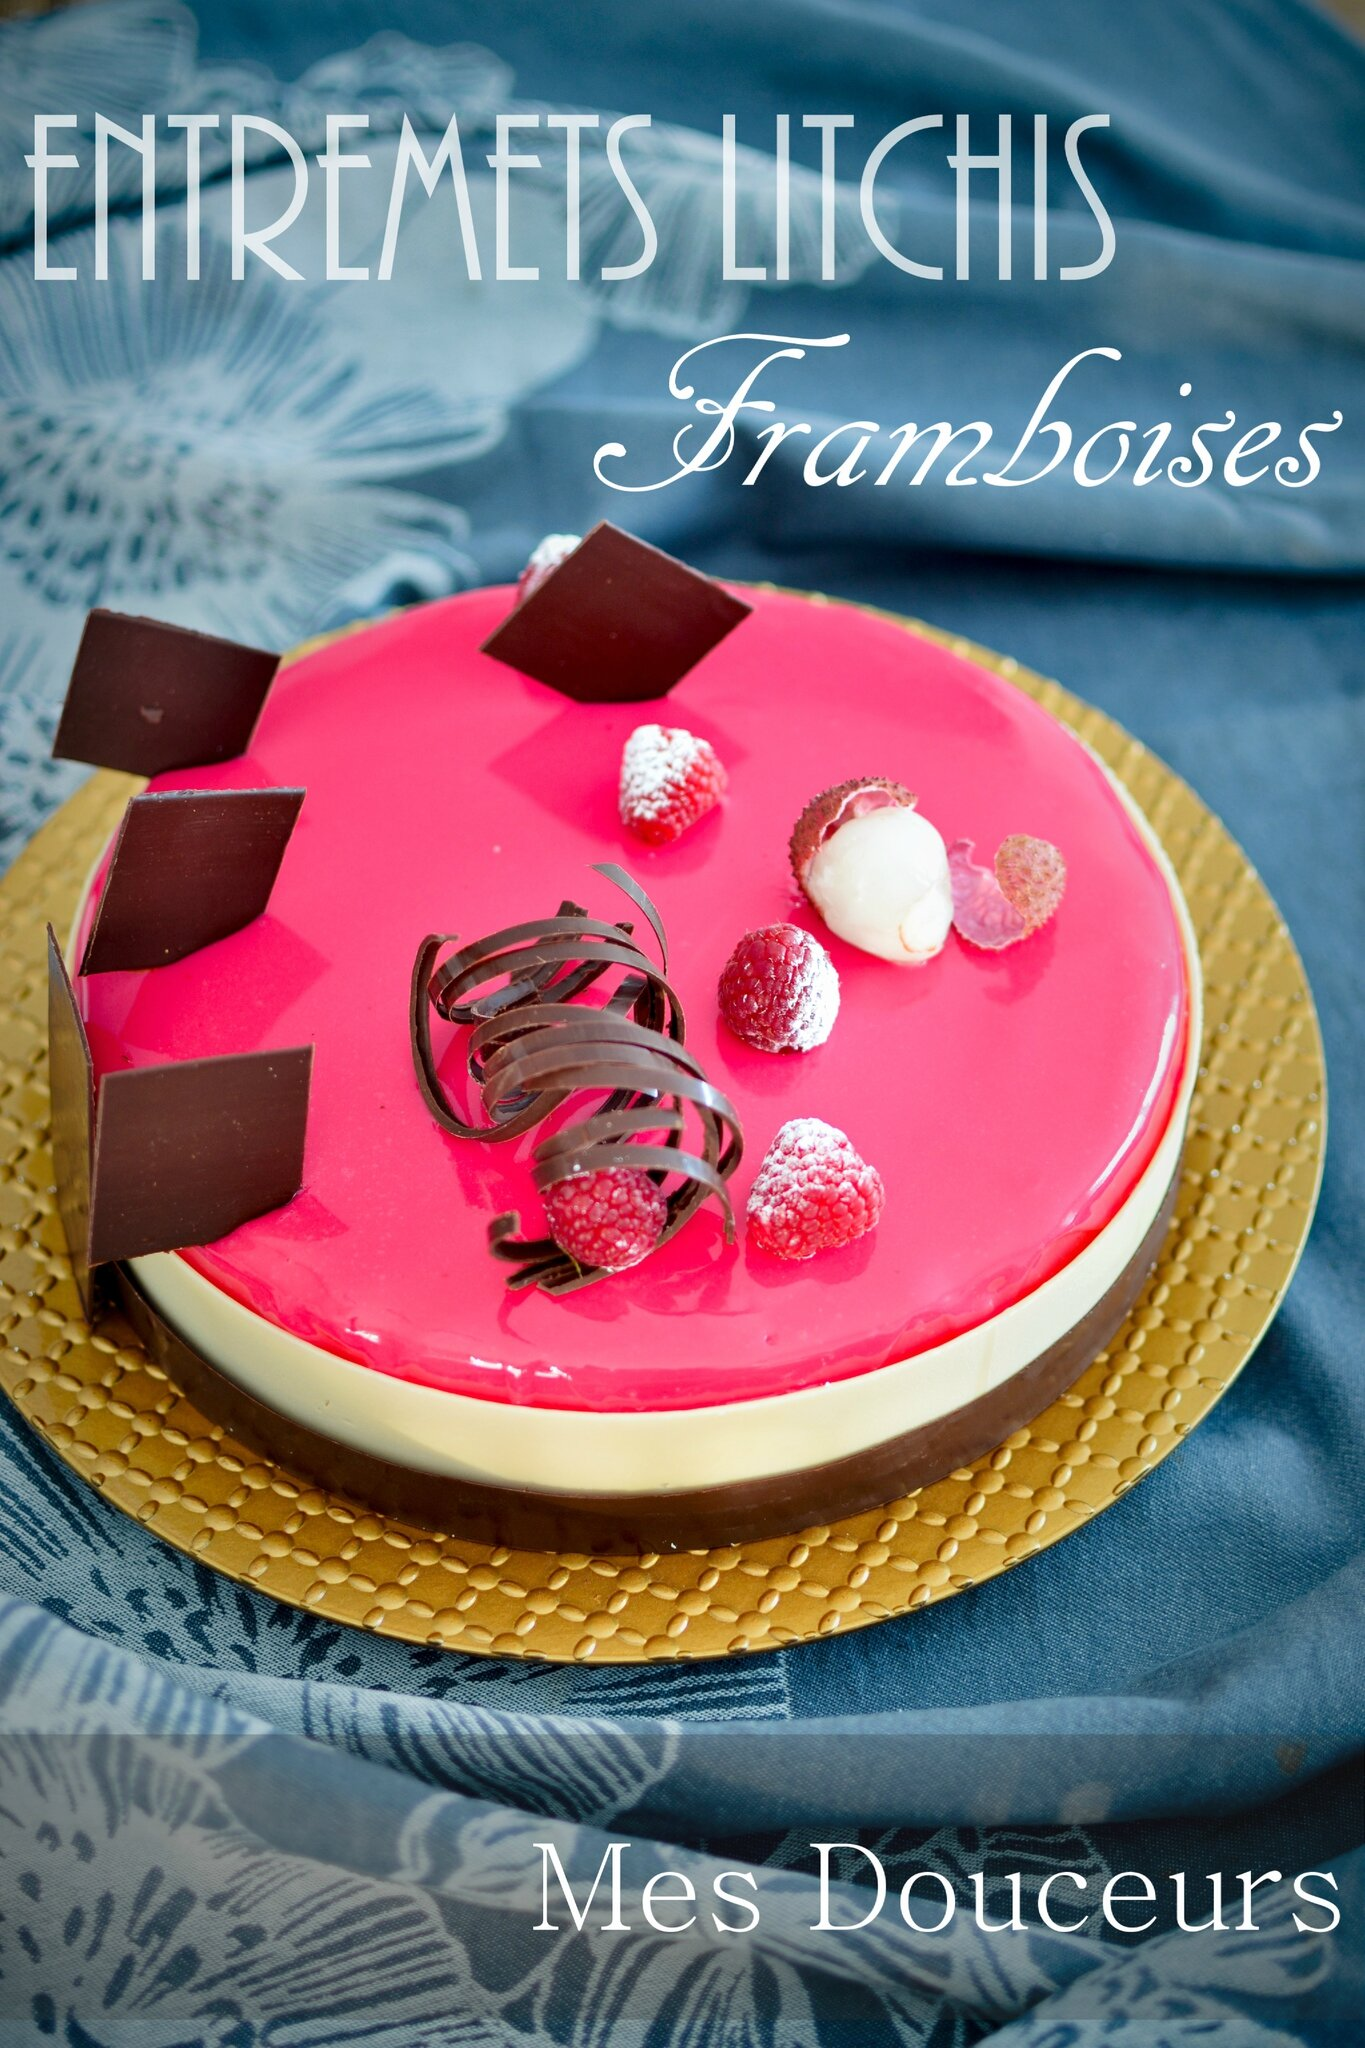 Entremets Litchis Framboises Biscuit Madeleine Mes Douceurs